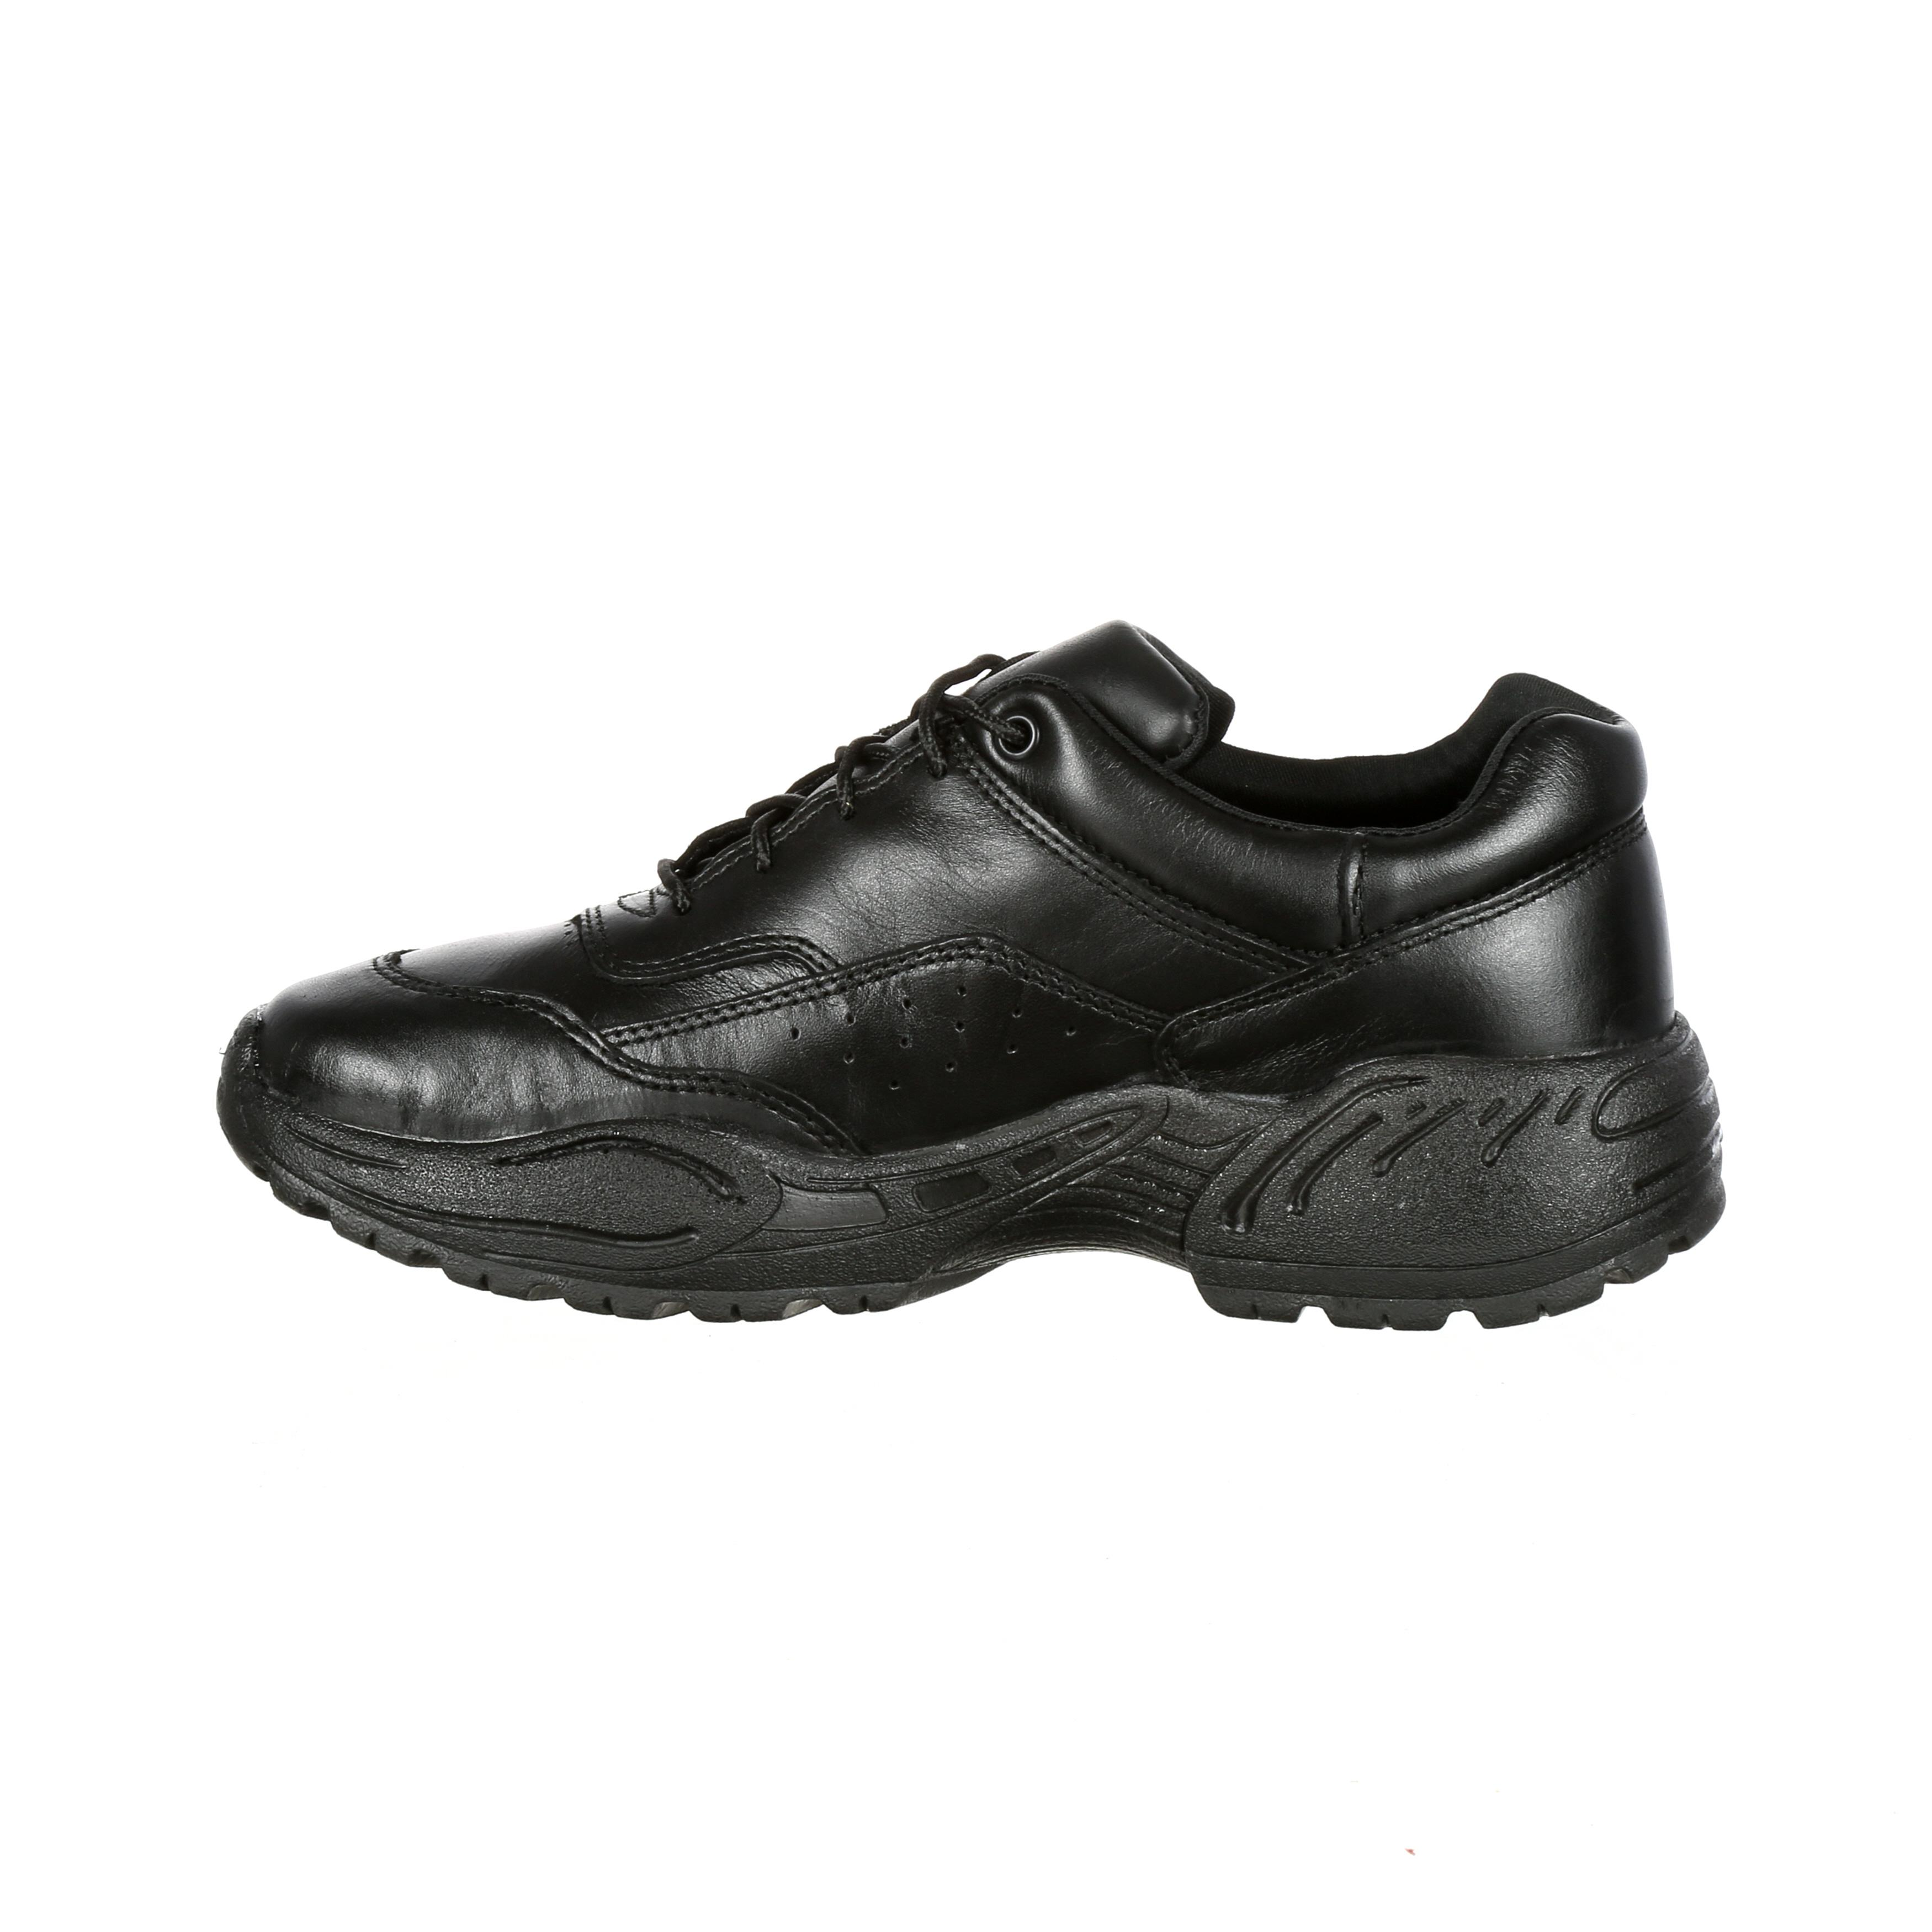 7049df34c361 Images. Rocky 911 Athletic Oxford Duty Shoes ...